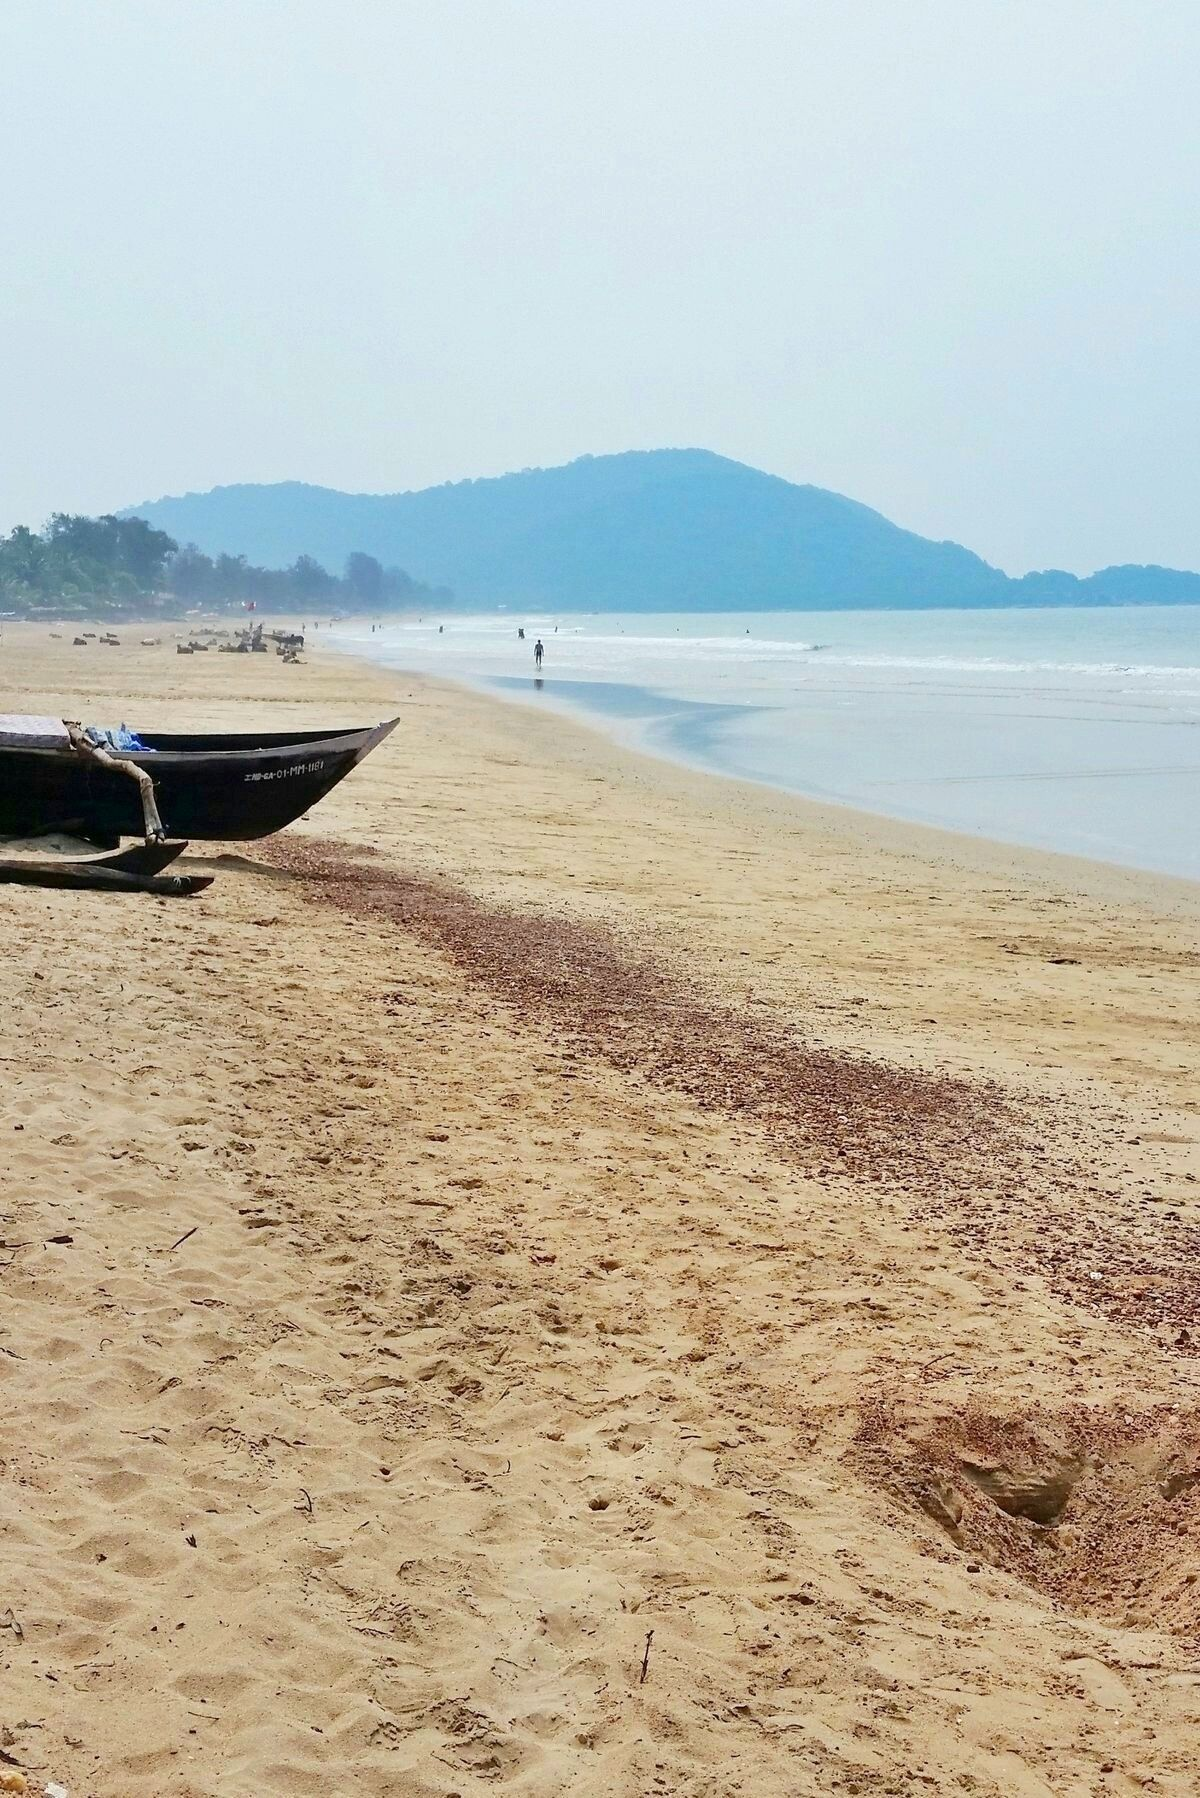 backpacking india travel tips for first trip to India. ocean beach photography. backpacking south asia. goa india. best places to visit in india. best things to do in india